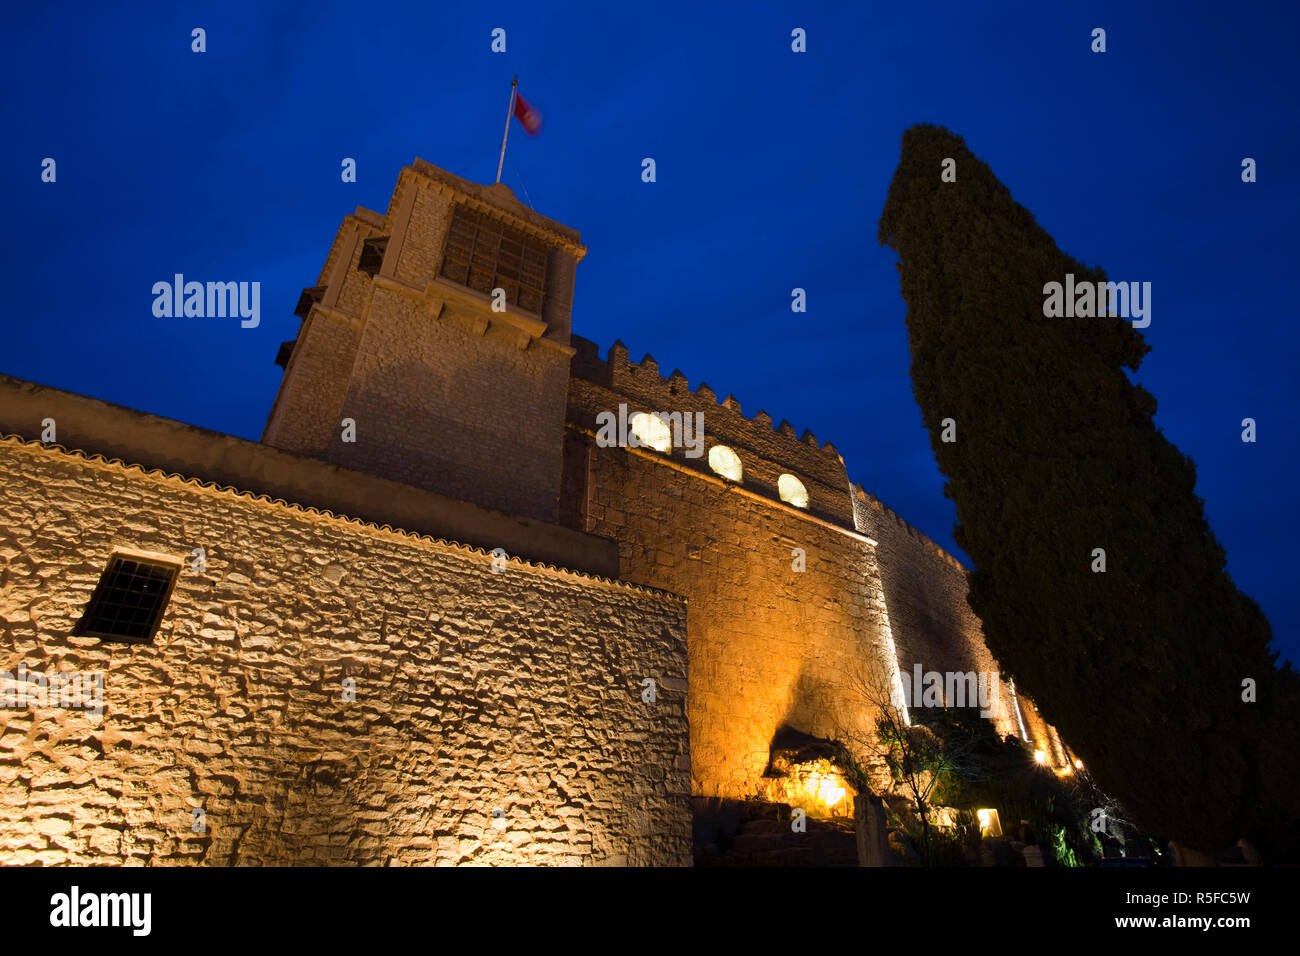 Tunisia, Central Western Tunisia, Le Kef, The Kasbah, evening - Stock Image